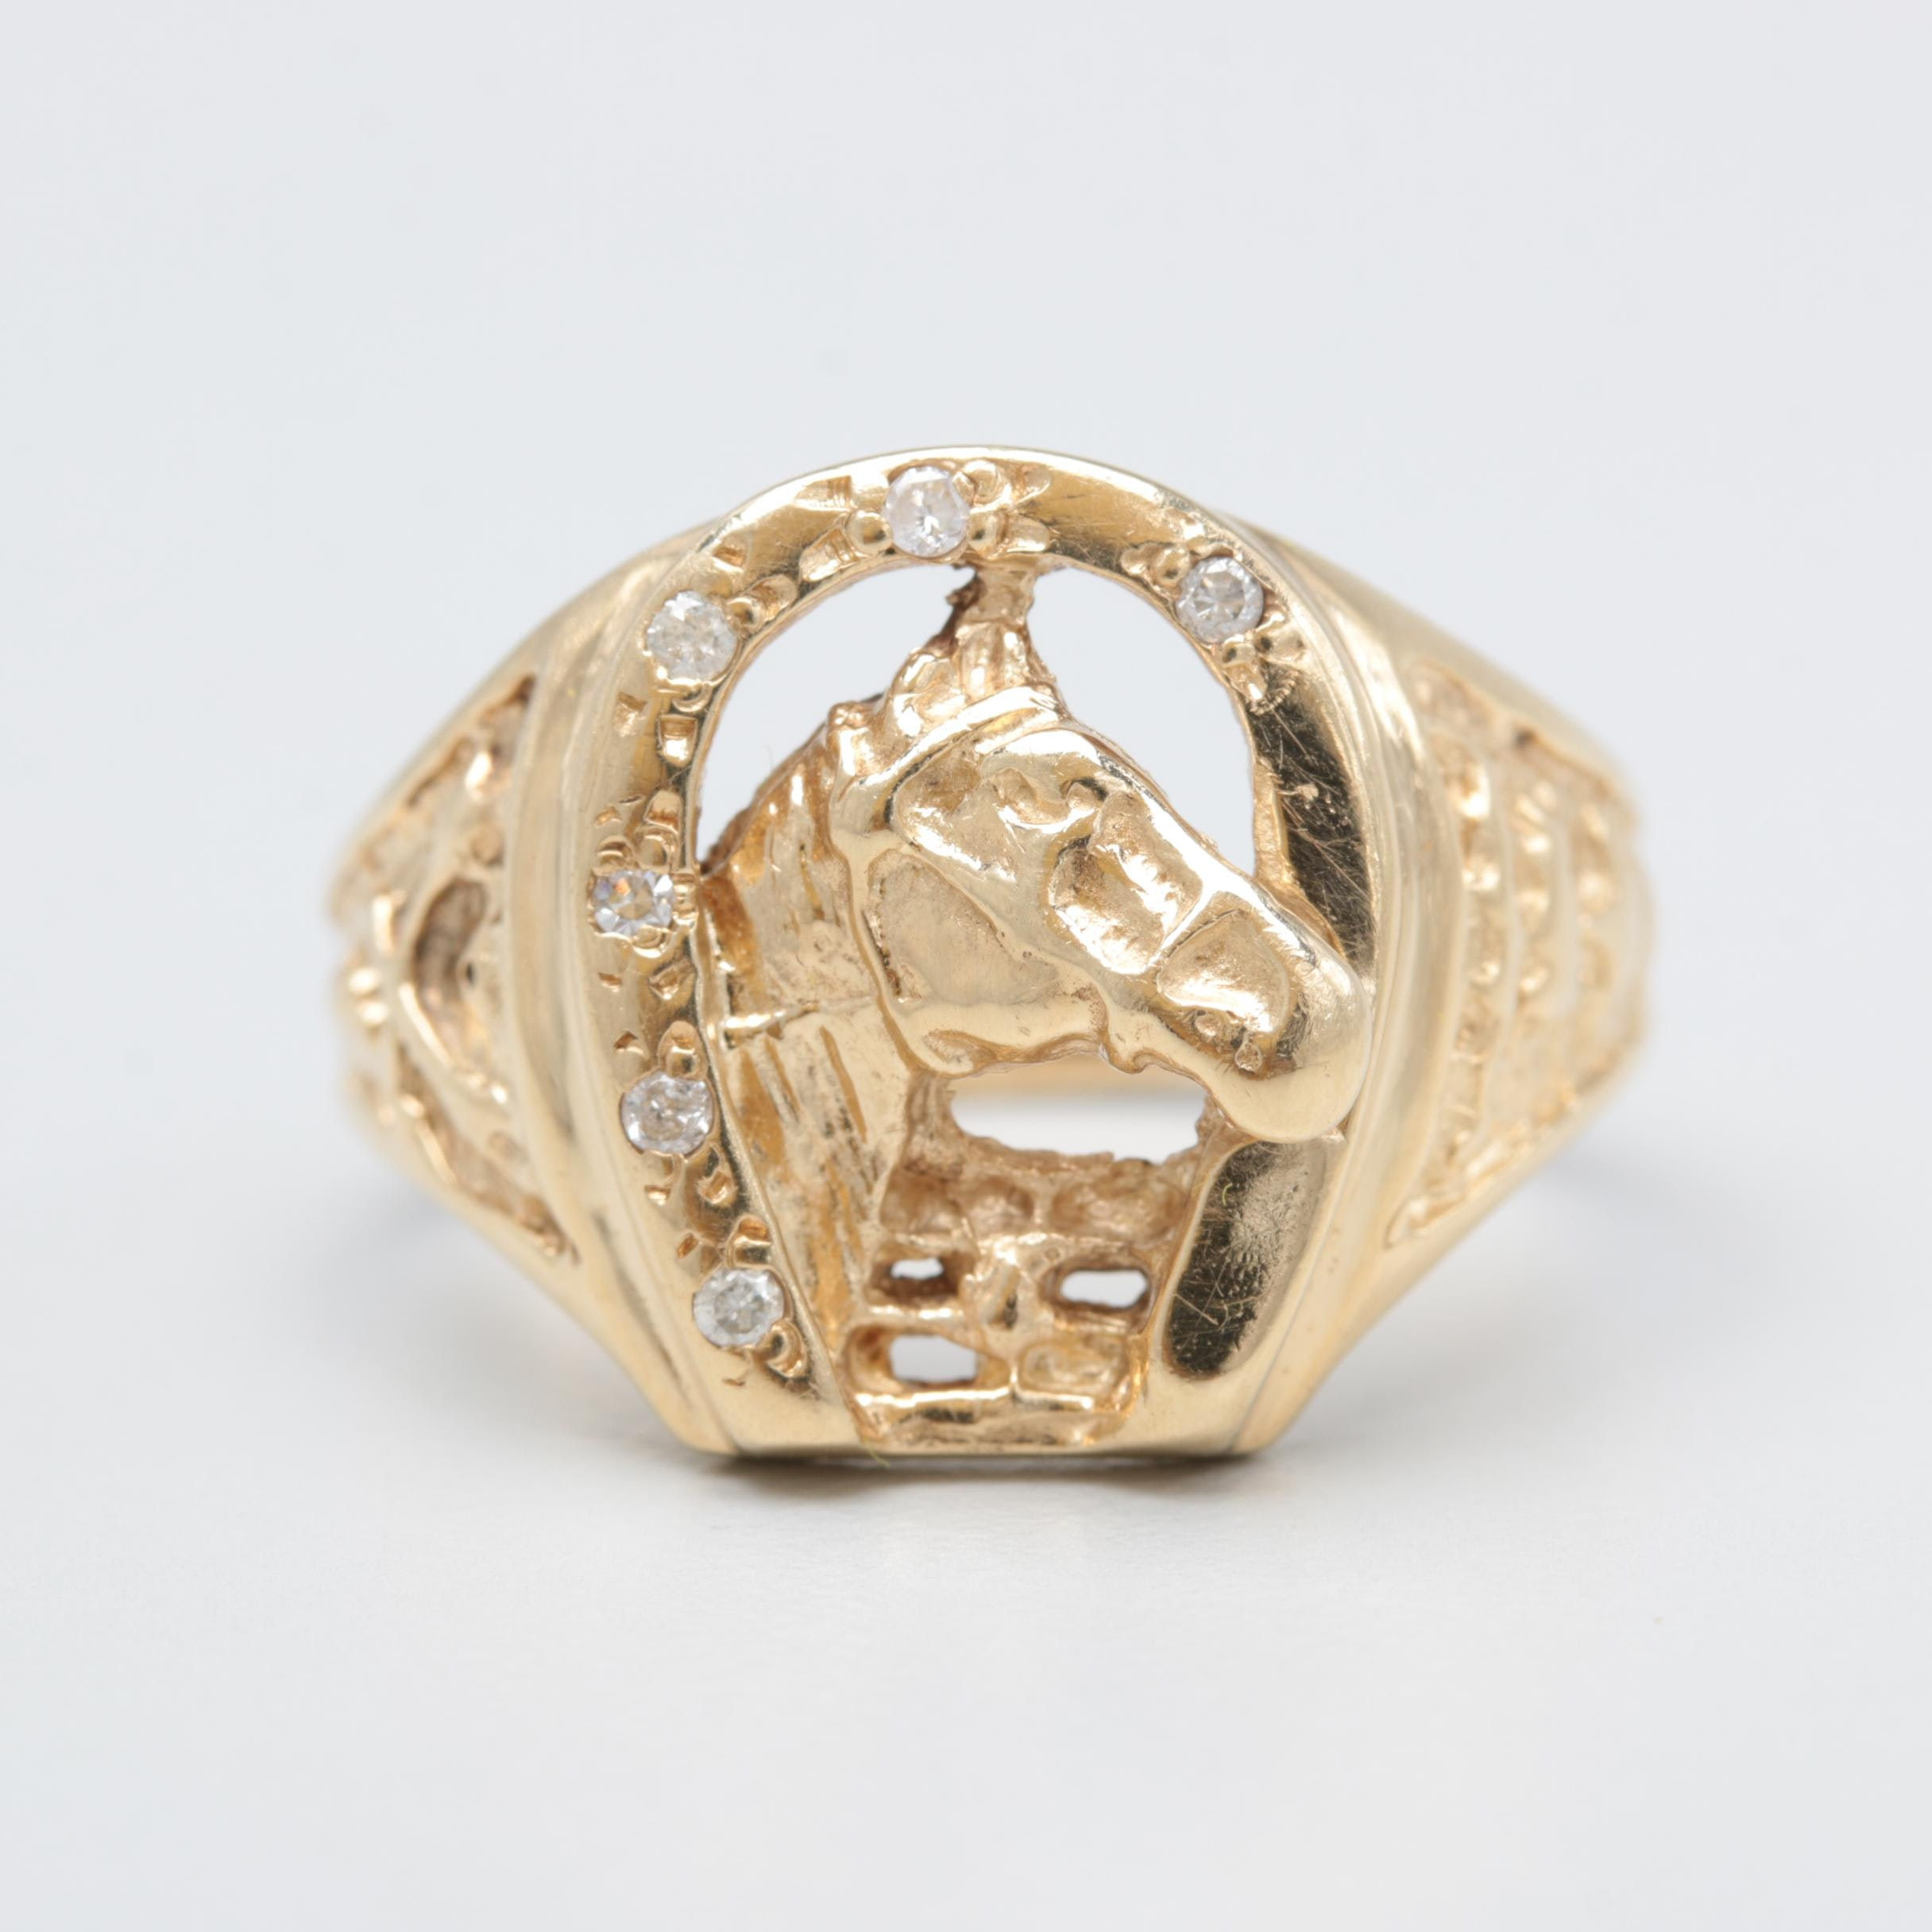 14K Yellow Gold Horse in Horse Shoe Diamond Ring